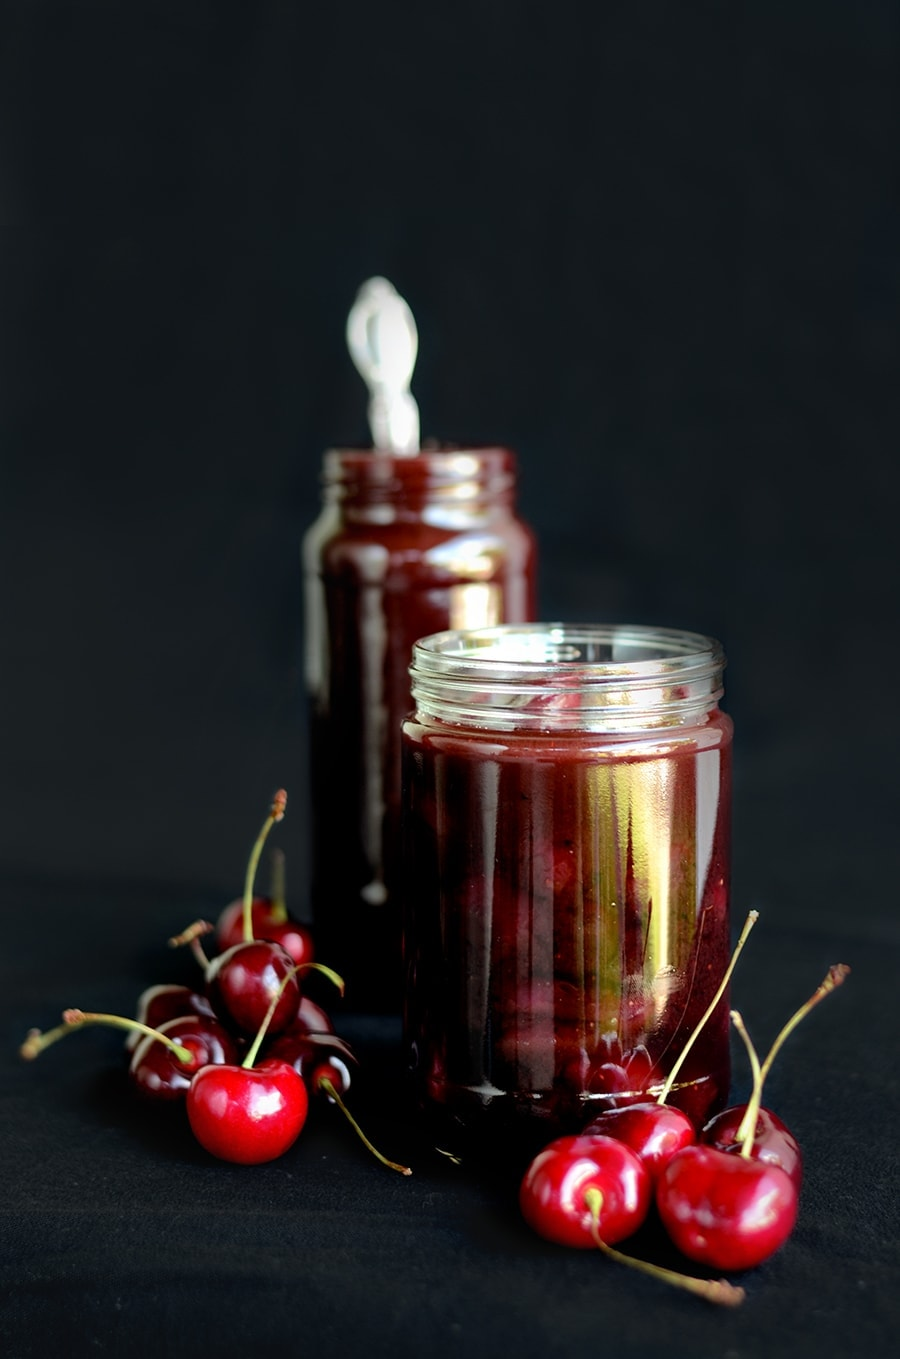 Jars of Grilled Cherries Web - Grilled Cherries in Spiced Butter Rum Sauce